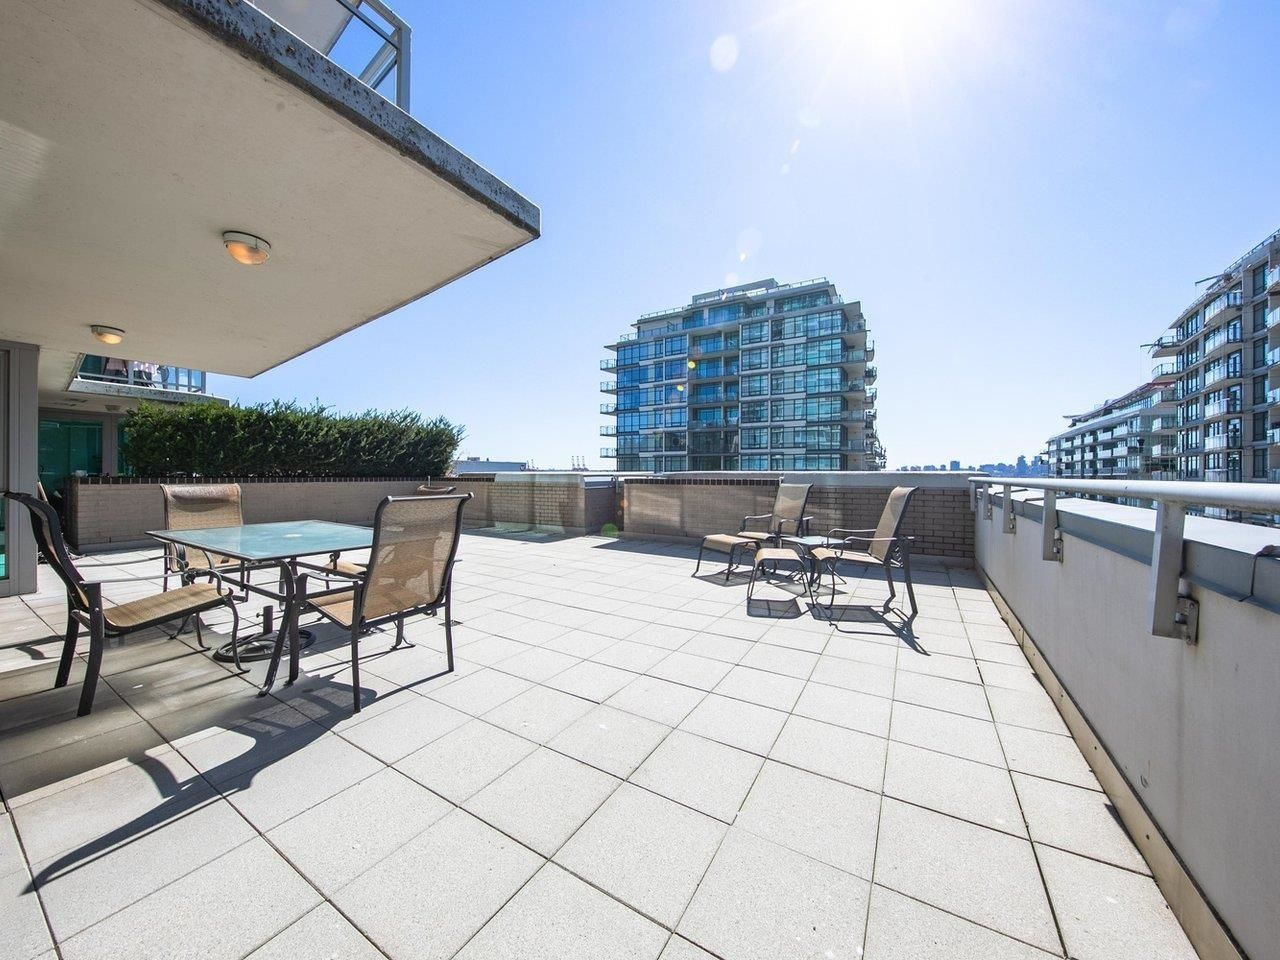 """Main Photo: 506 188 E ESPLANADE in North Vancouver: Lower Lonsdale Condo for sale in """"The Esplanade at The Pier"""" : MLS®# R2615111"""